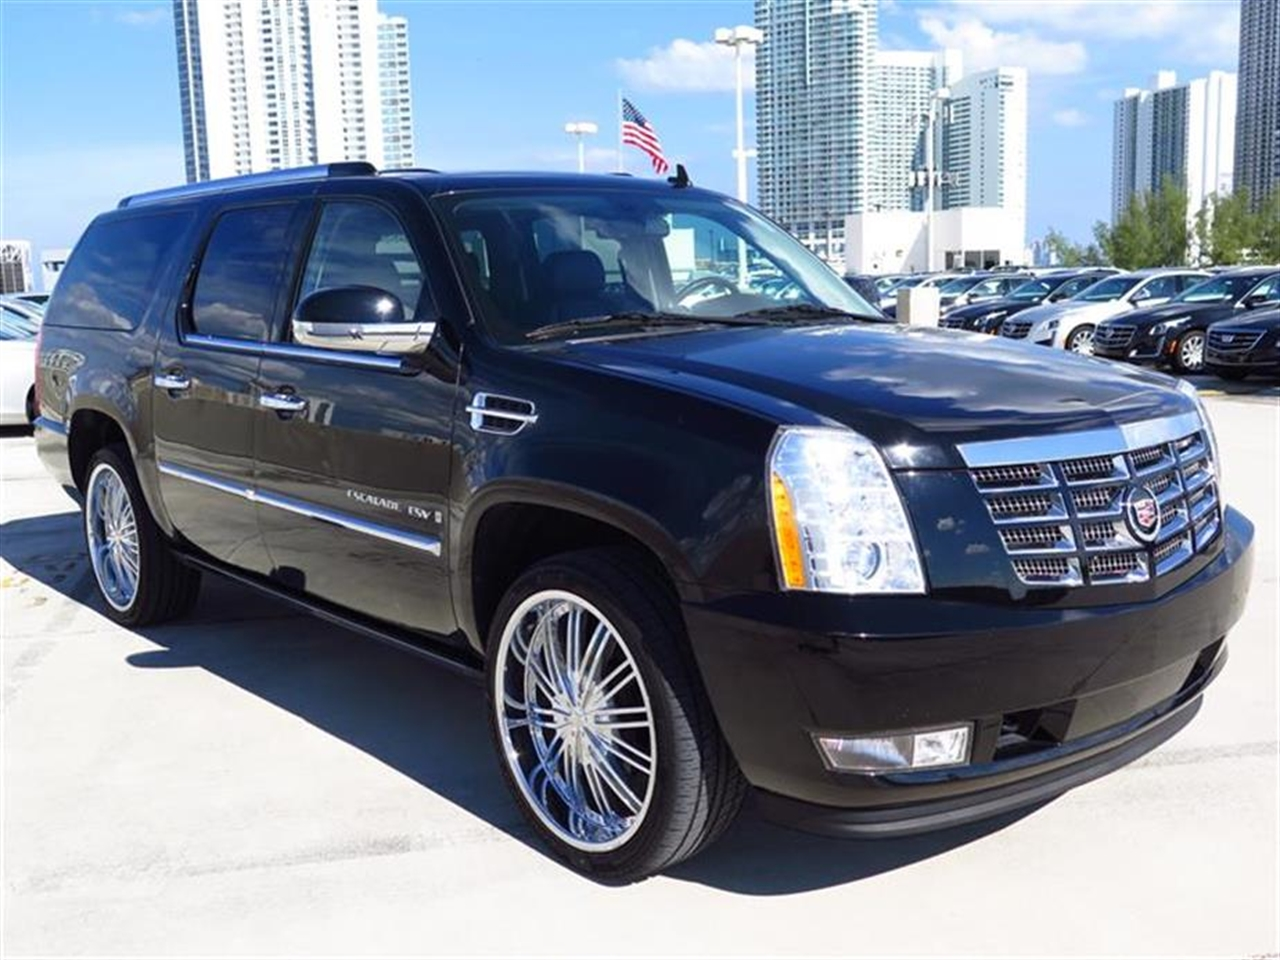 2009 CADILLAC ESCALADE ESV 2WD 4dr 31902 miles Climate control rear air conditioning rear heat